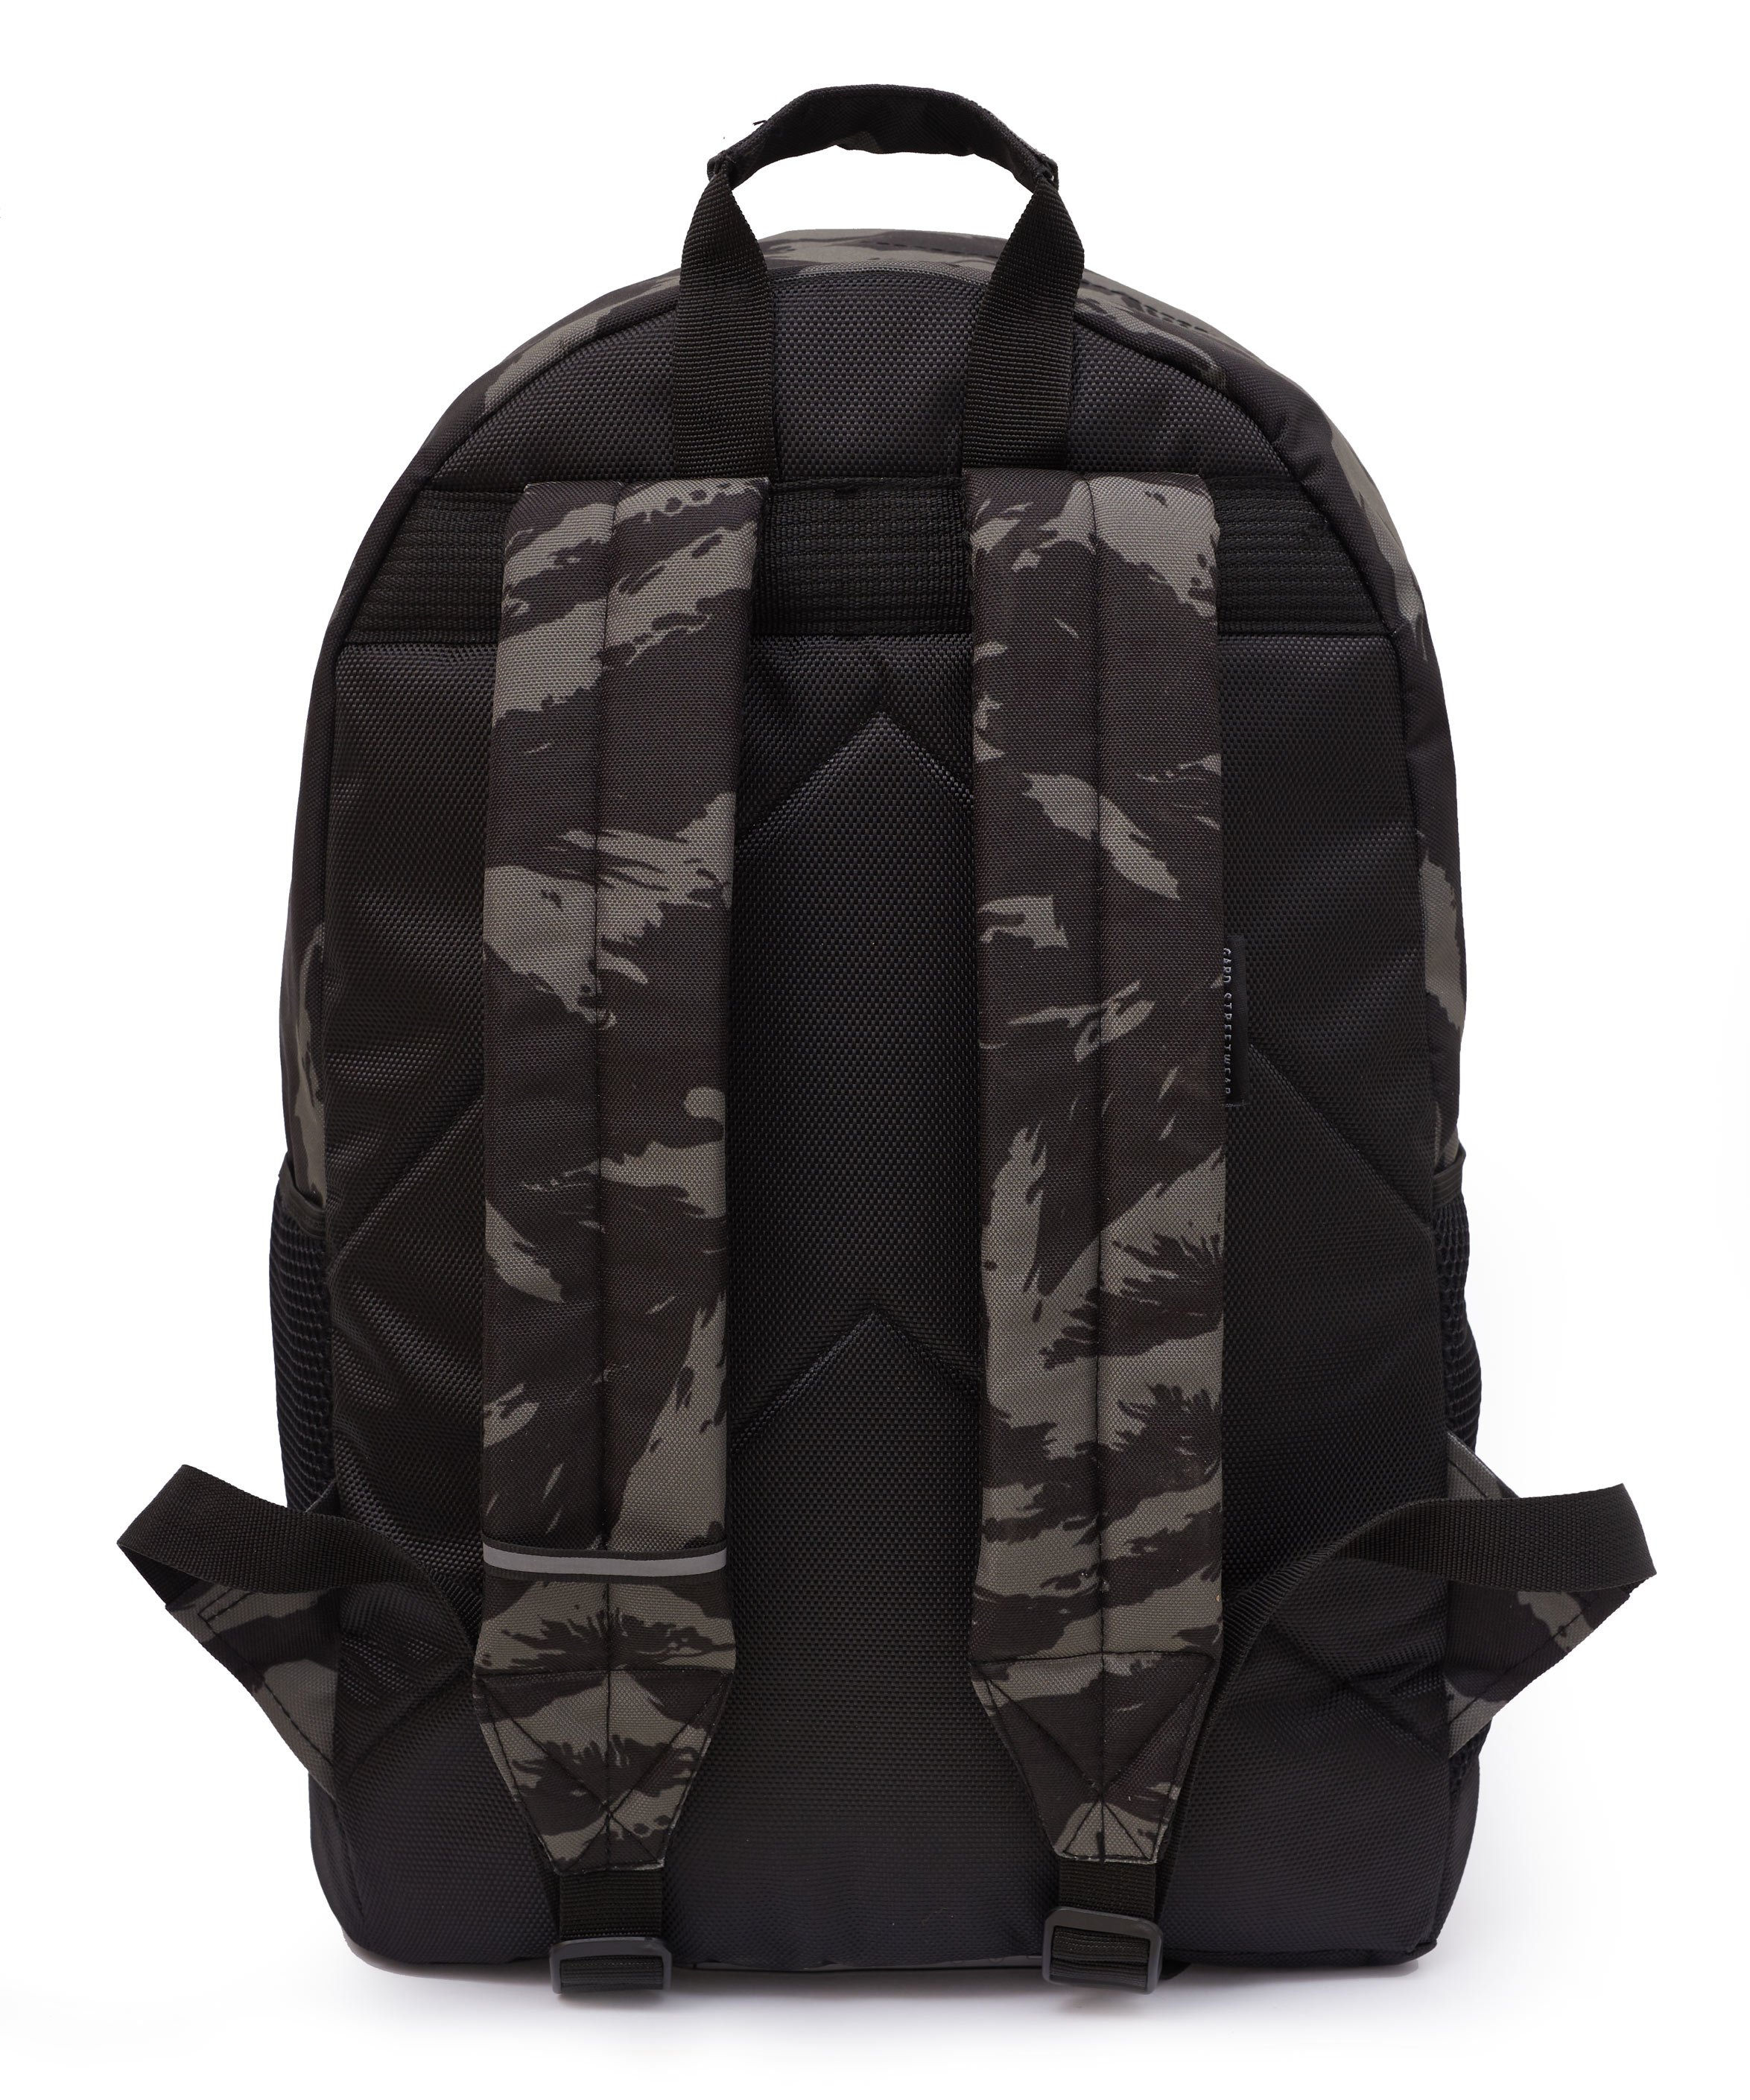 Рюкзак BACKPACK-2 tiger grey camo 1/18